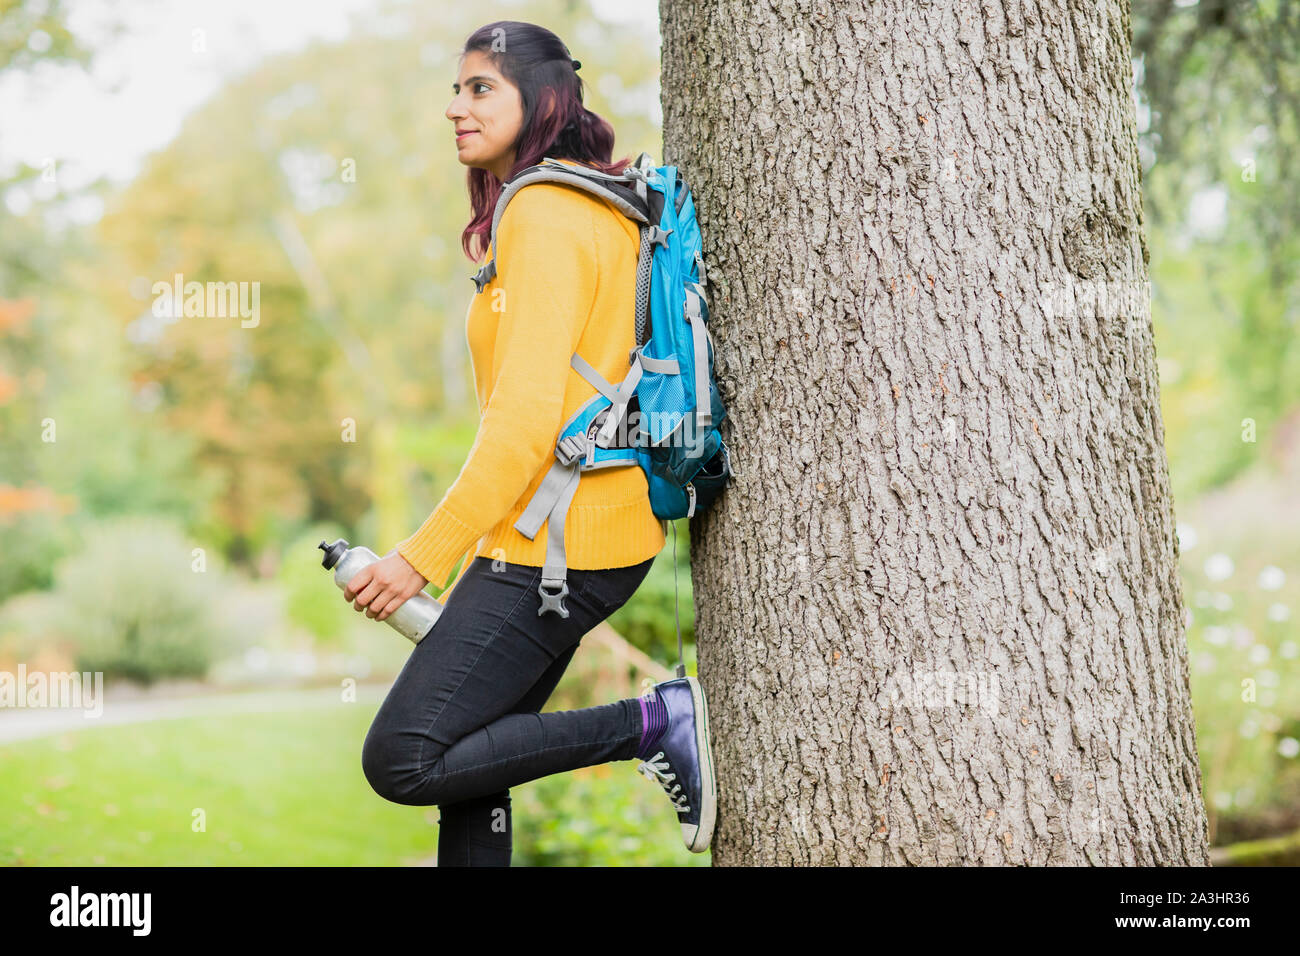 young woman hiking and standing near a tree Stock Photo